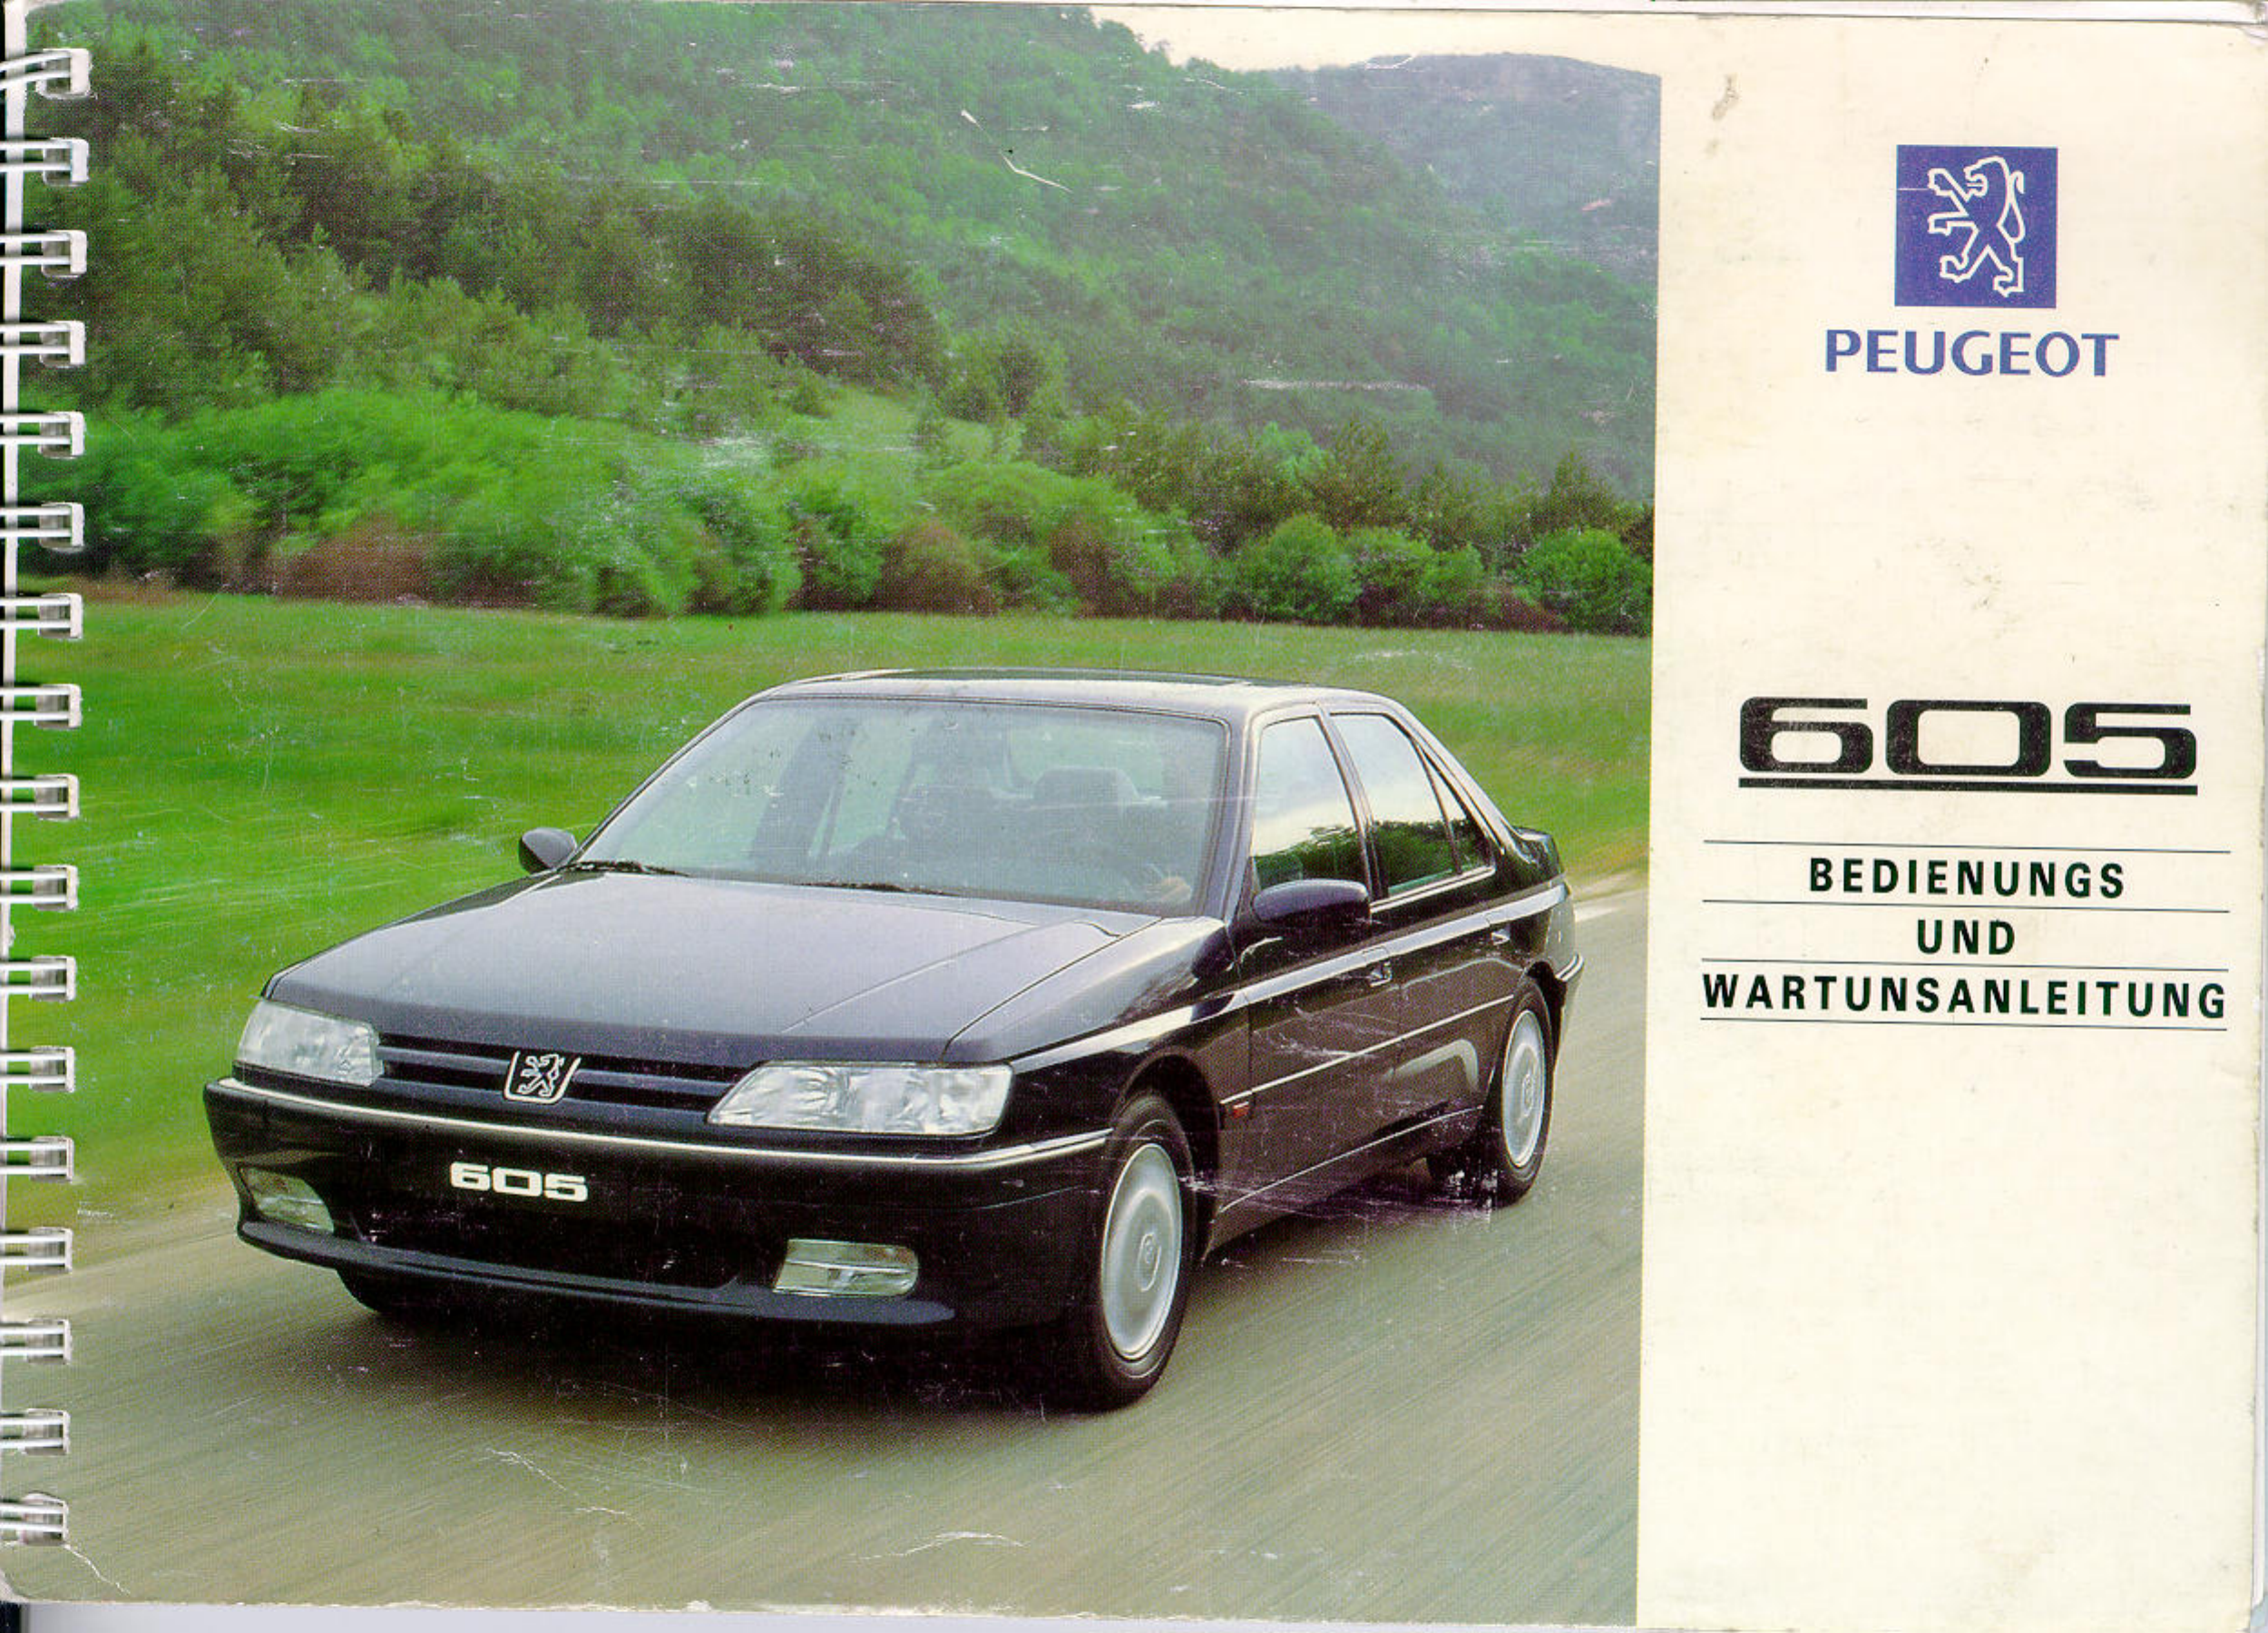 peugeot 605 owners manual german pdf rh manuals co Peugeot 606 Peugeot 606